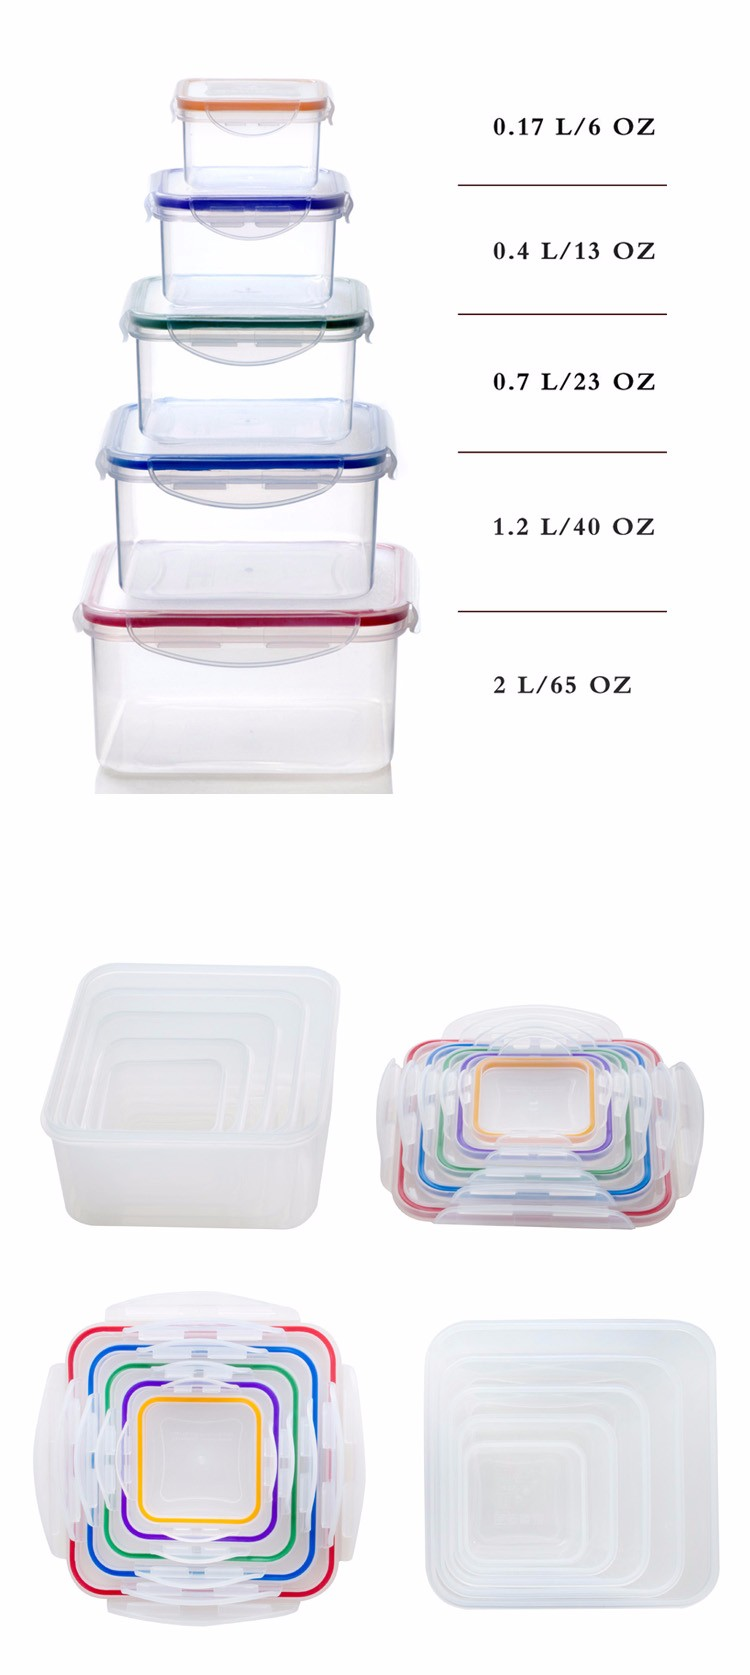 Microwave Dishwasher Safe Waterproof Keep Food Fresh Airtight Food Container Set With Lock Lids